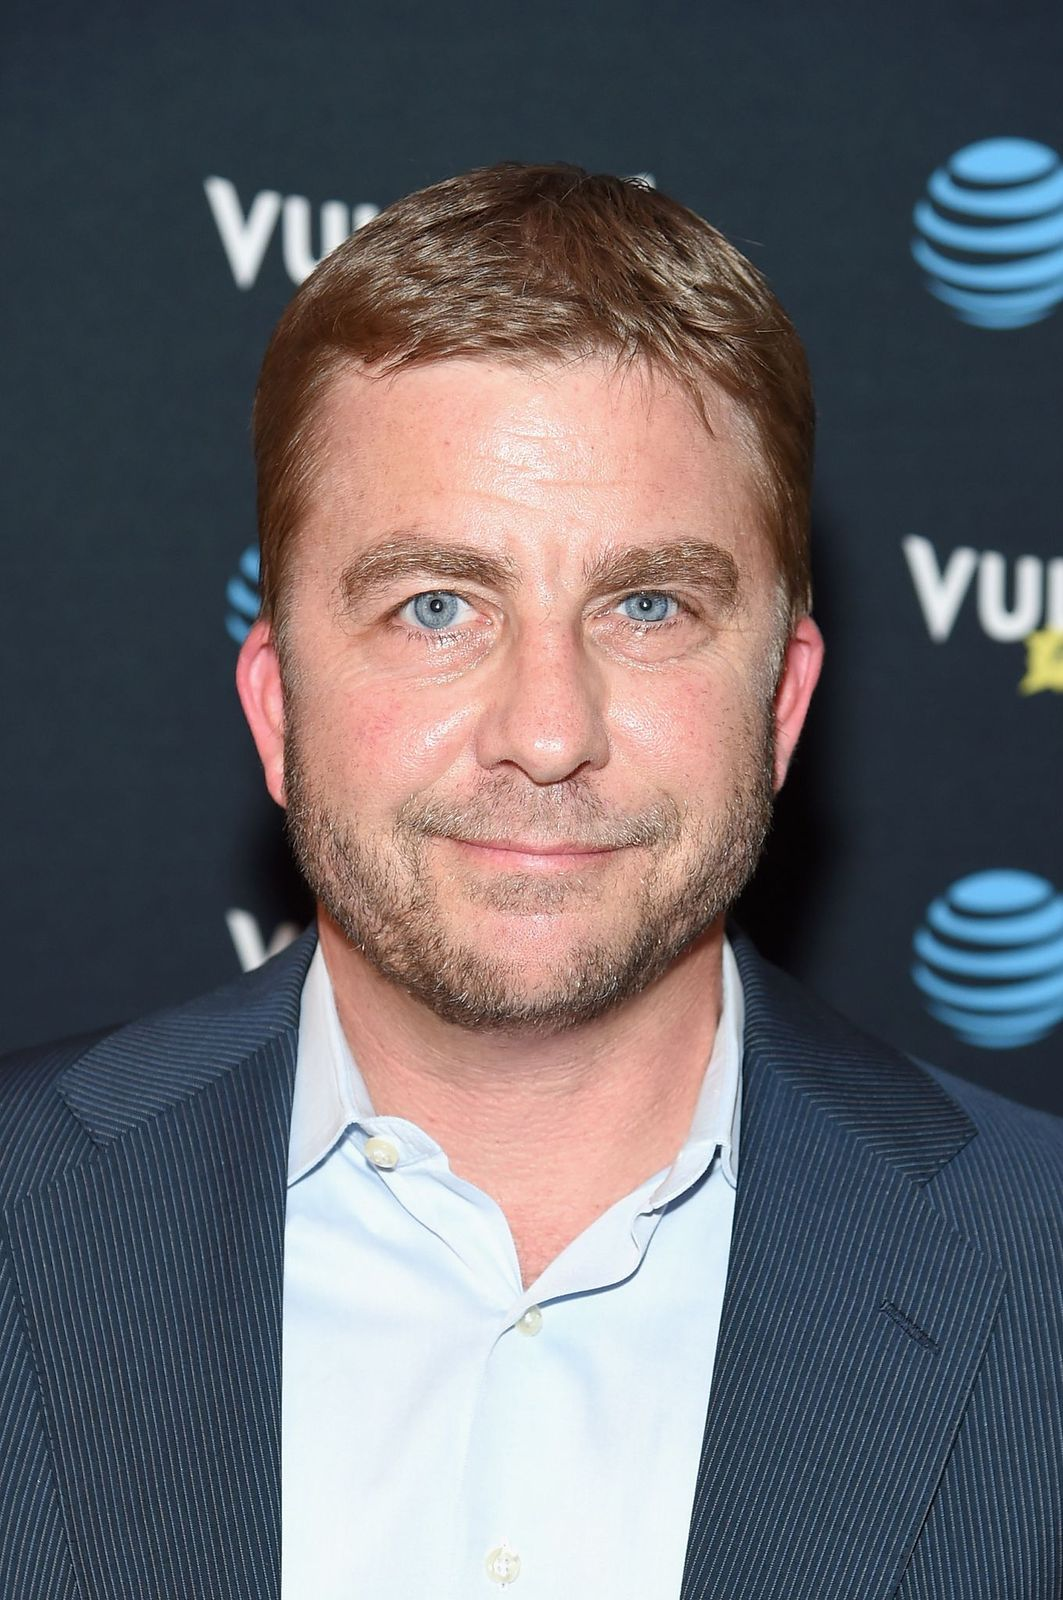 Peter Billingsley attends the Vulture Festival Opening Night Party at the Top of The Standard Hotel on May 19, 2017 in New York City. | Photo: Getty Images